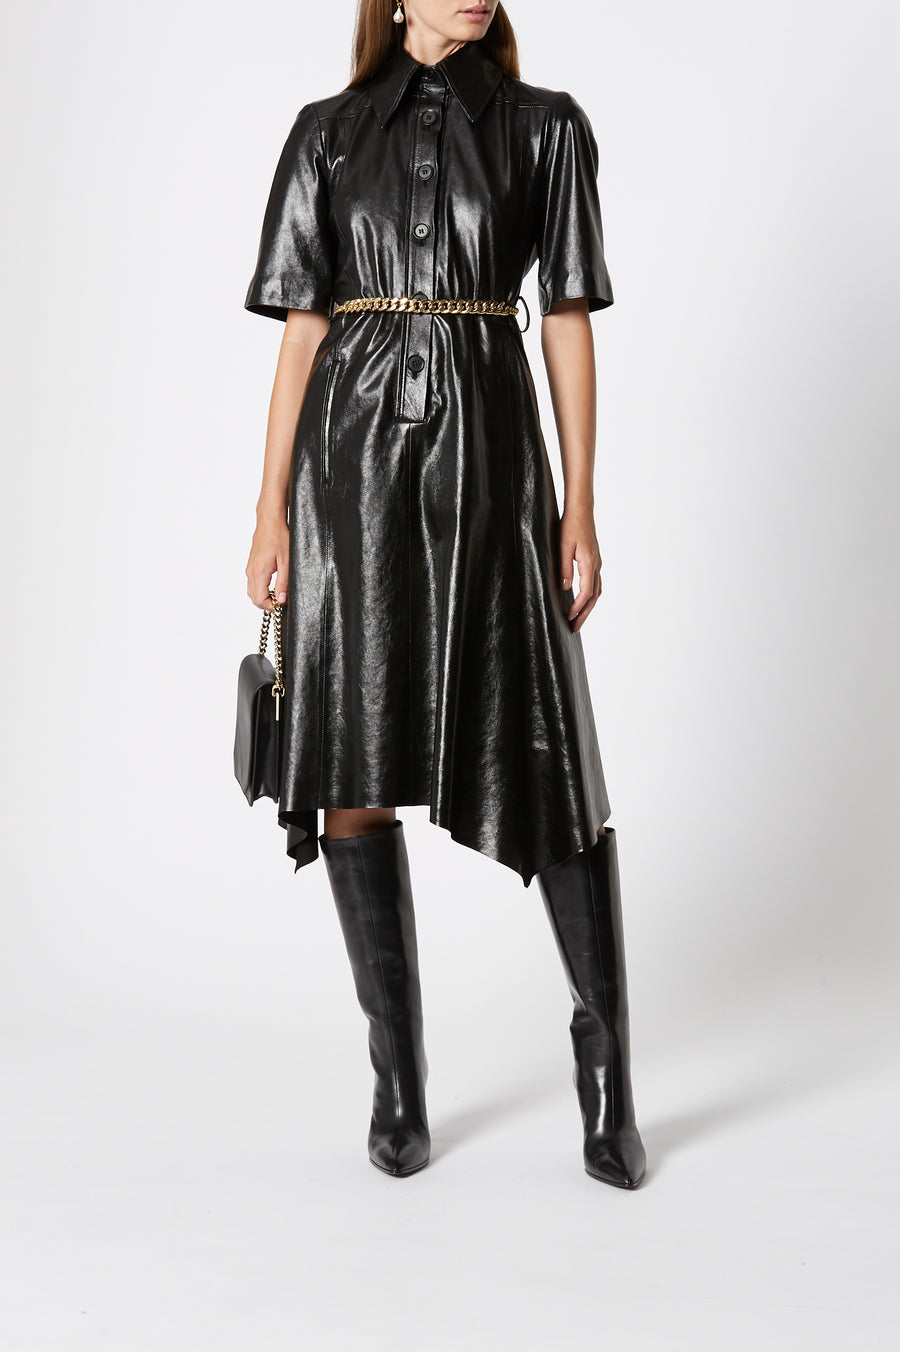 Leather Dress, 100% leather, loose fit ,includes a belt, has a collar, short sleeves and button fastenings through the front, Color Black